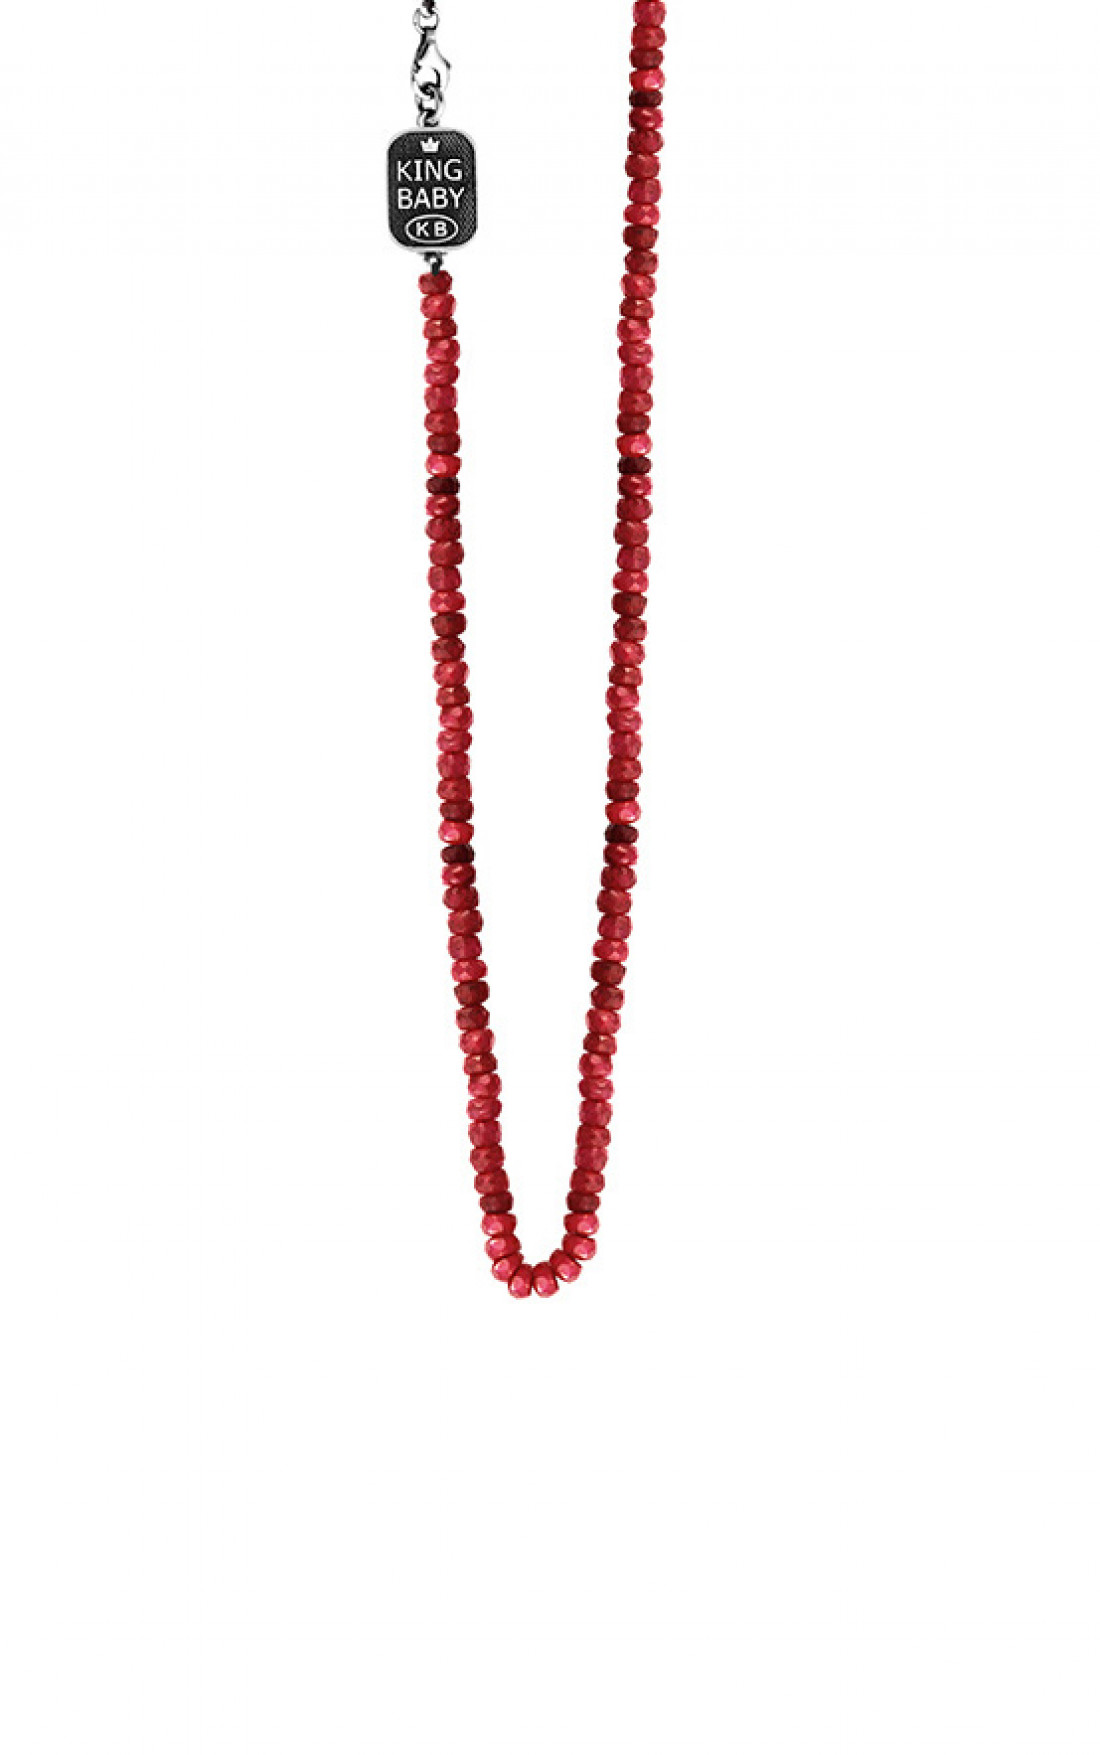 King Baby - Ruby Bead Necklace (K55-5100)